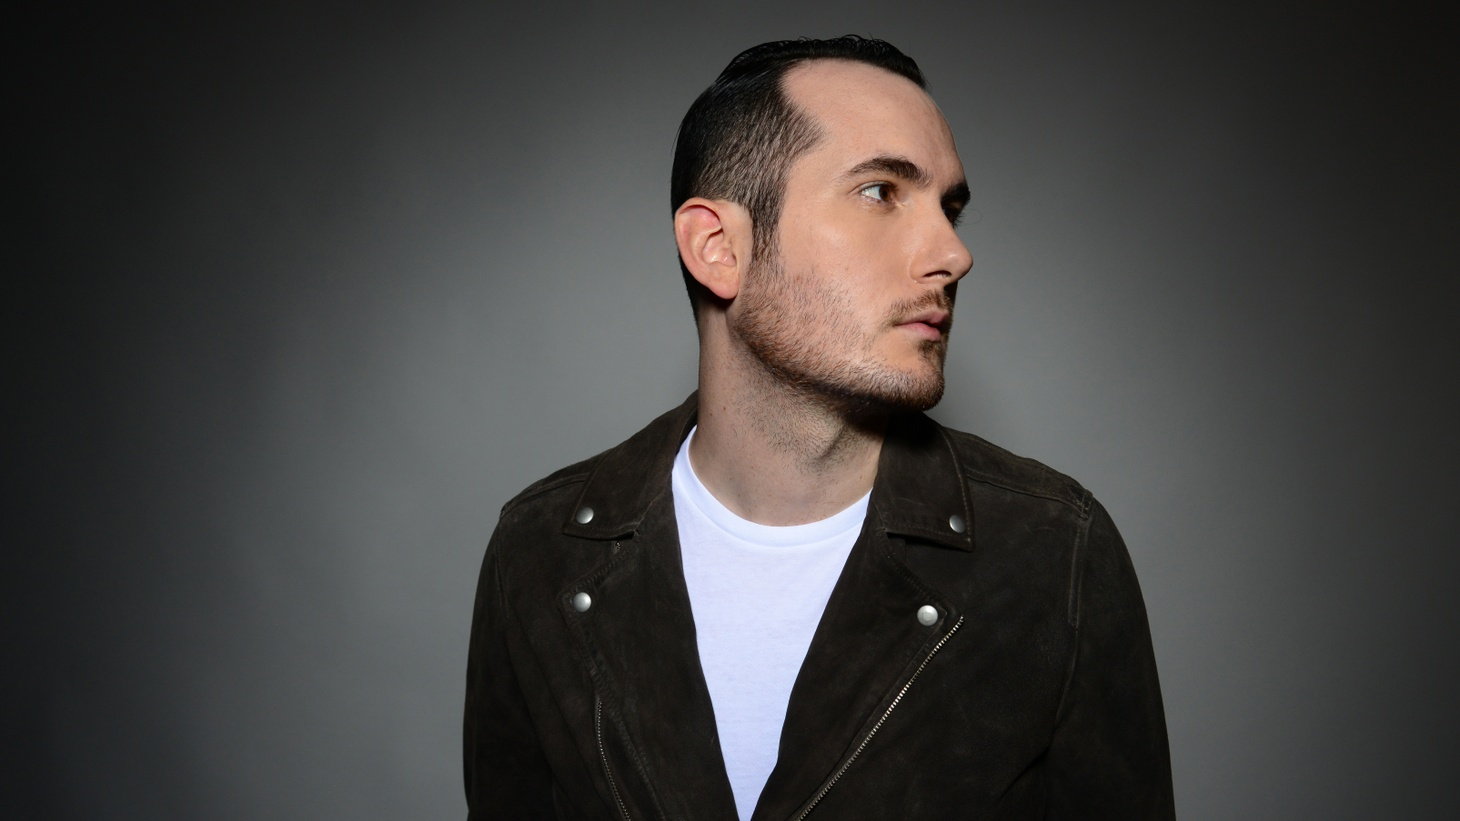 For fans of electronic music; producer, DJ and songwriter Andrew Bayer needs little introduction.